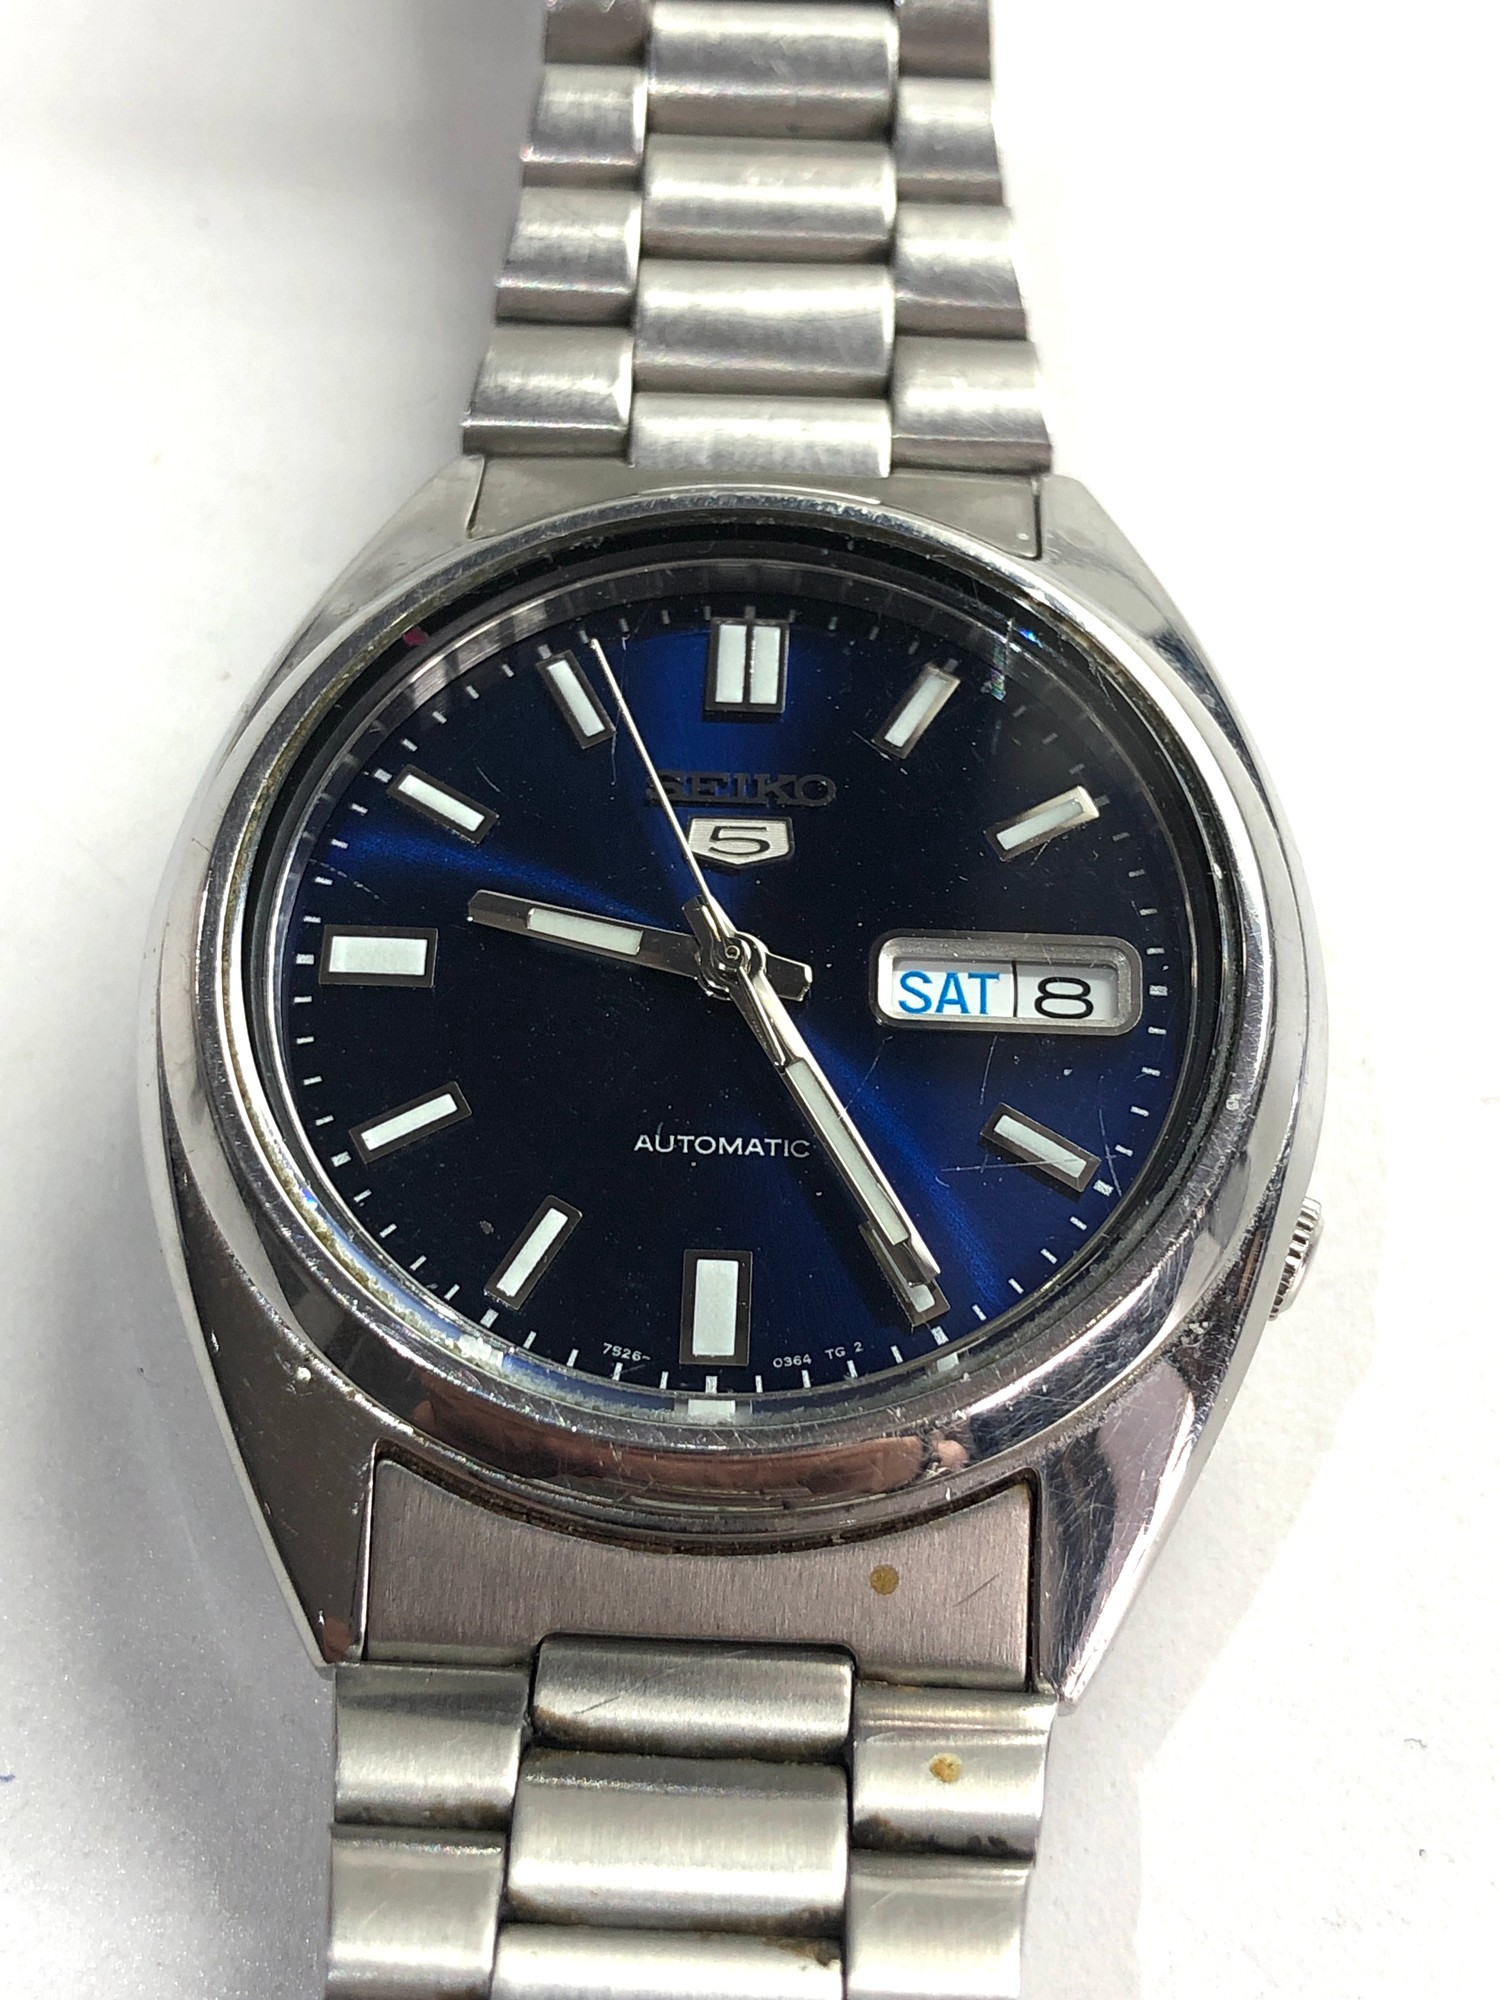 Gents seiko 5 automatic gents wristwatch in working order but no warranty is given 7526-0480 - Image 2 of 4